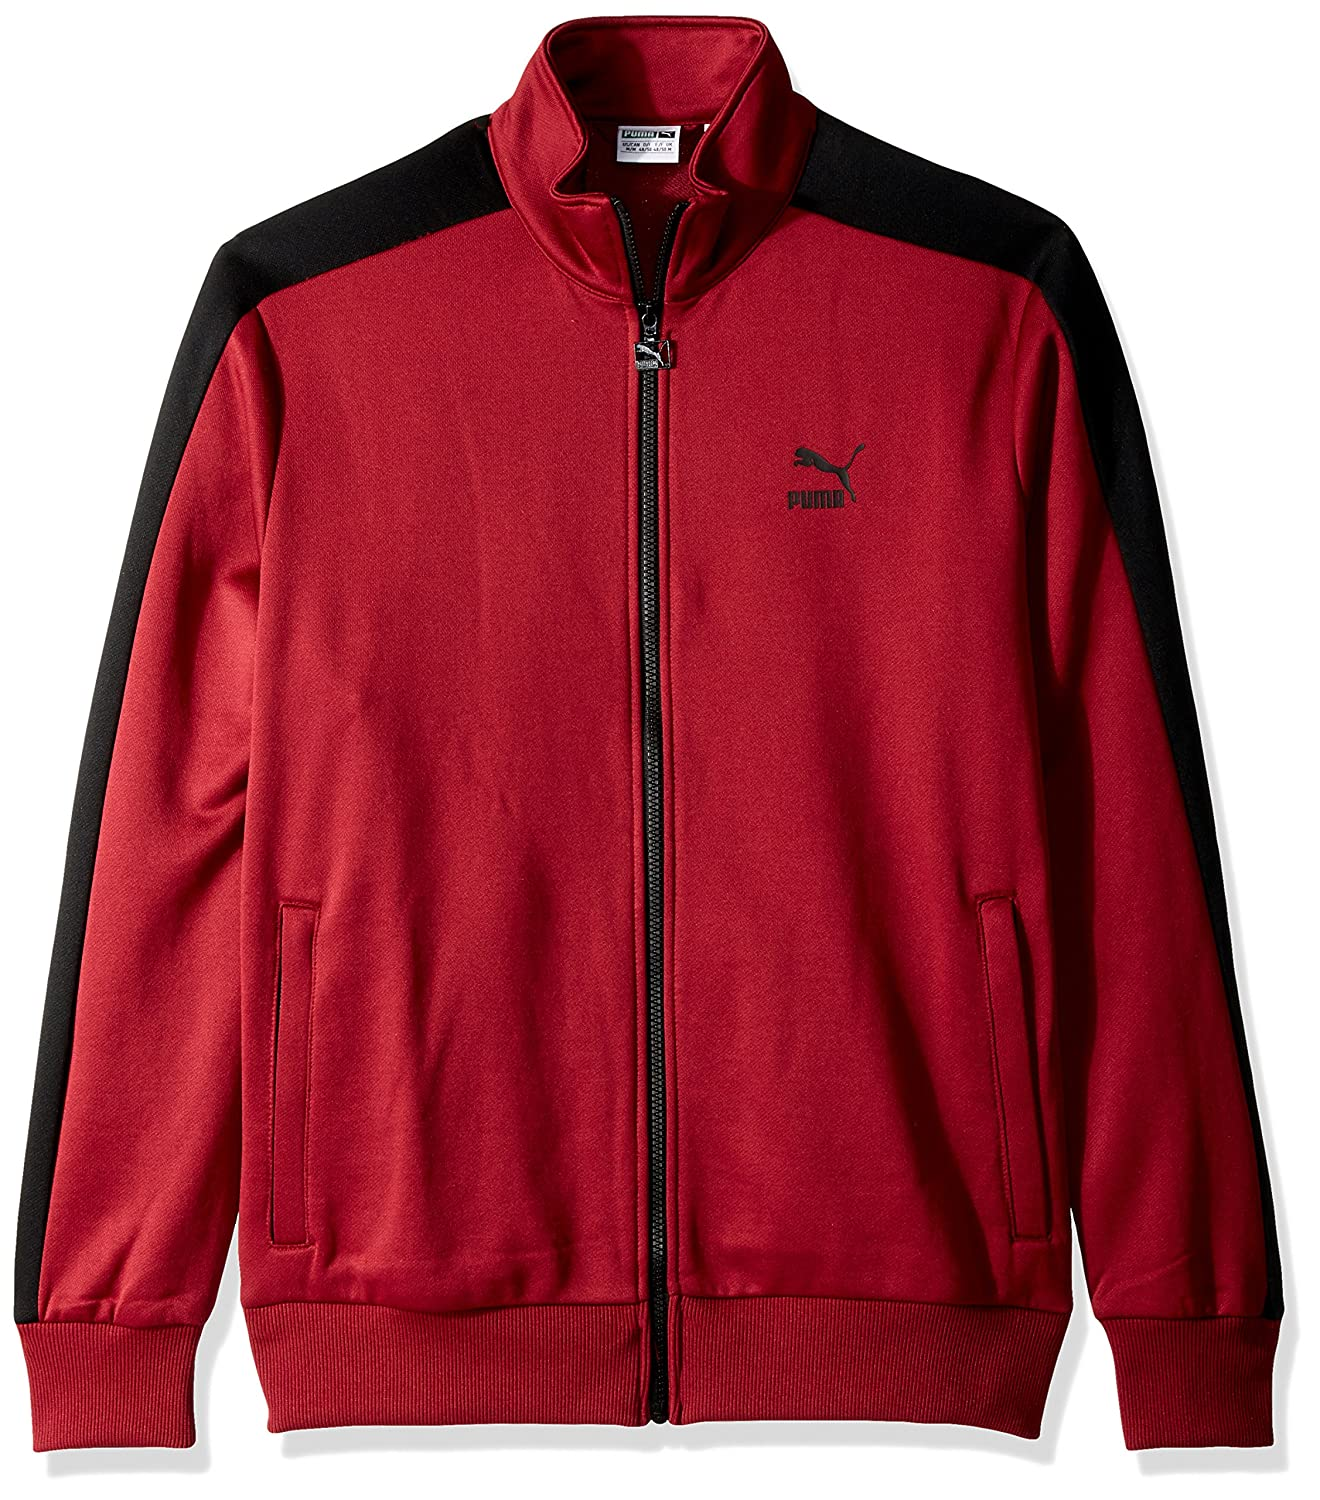 PUMA Men's Archive T7 Track Jacket Puma Men' s Athletic 57331209